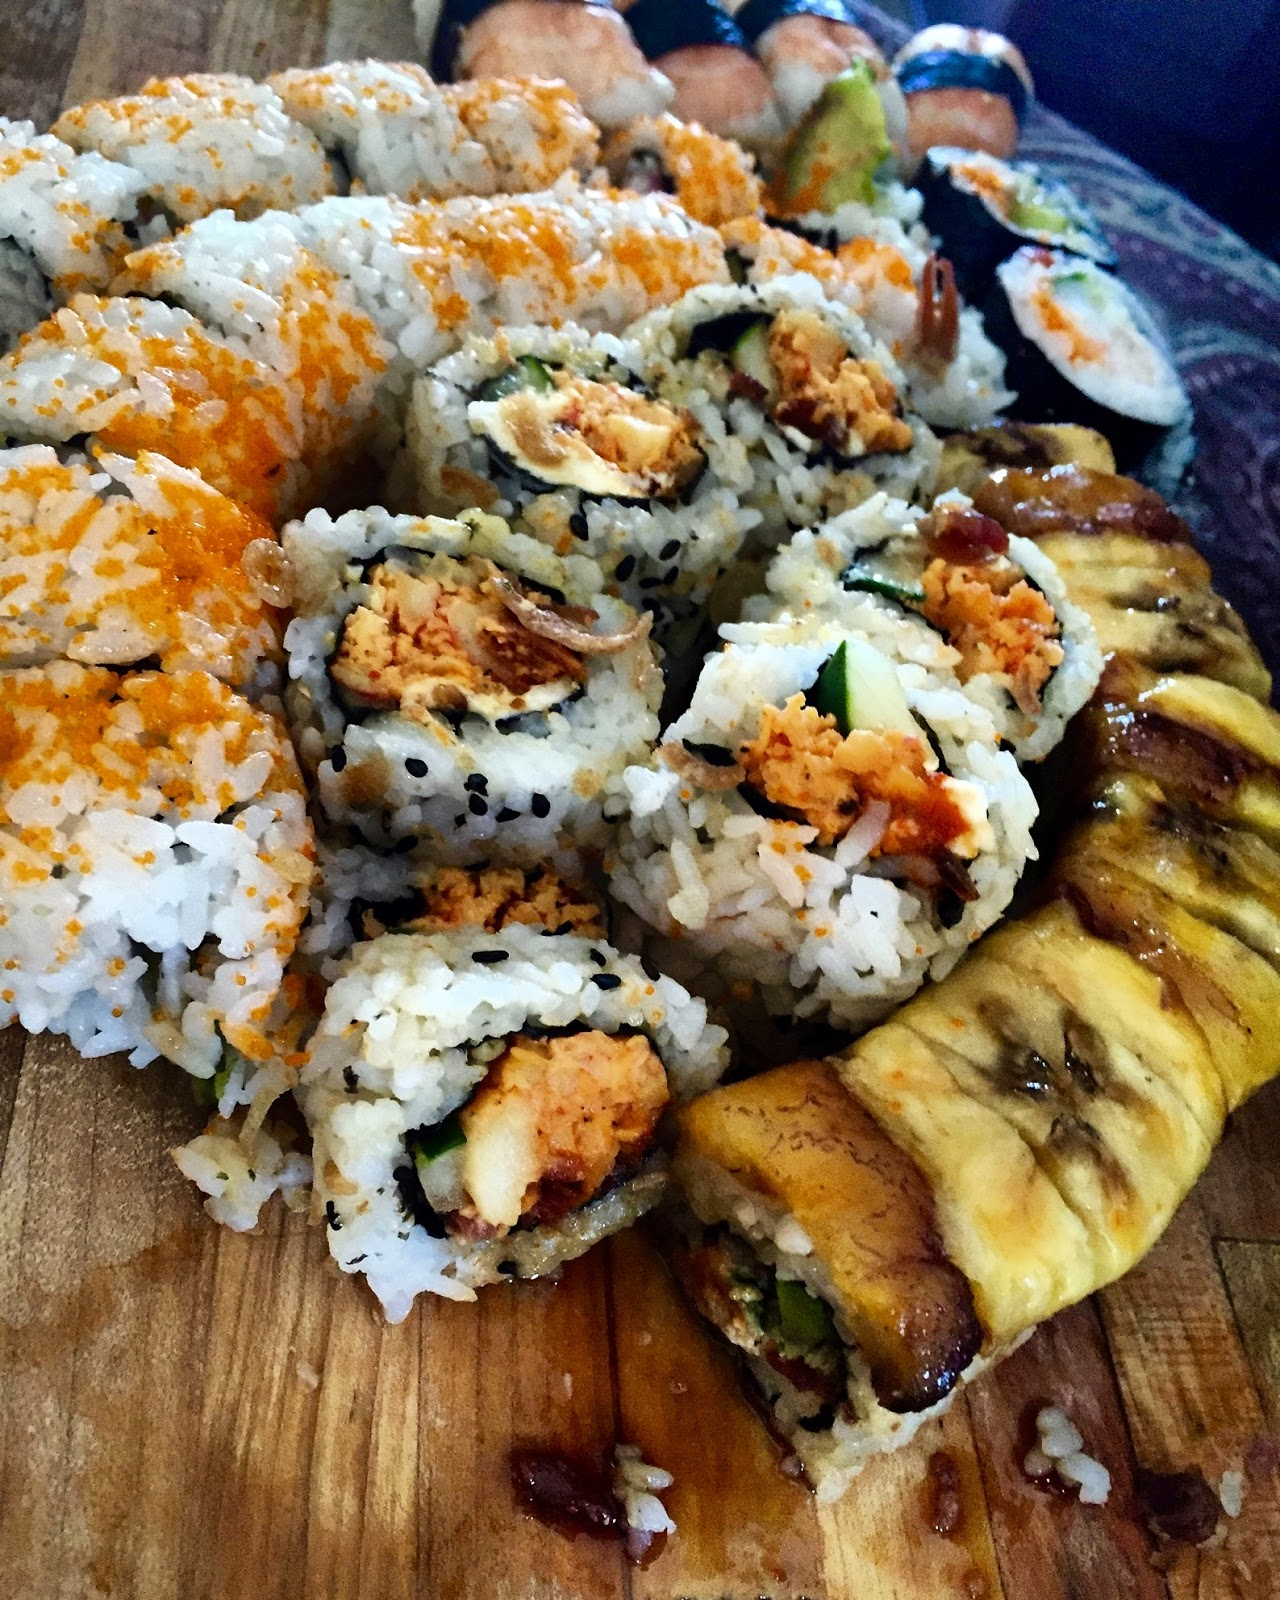 Sushi Hells Kitchen: Sip And Savour Rochester